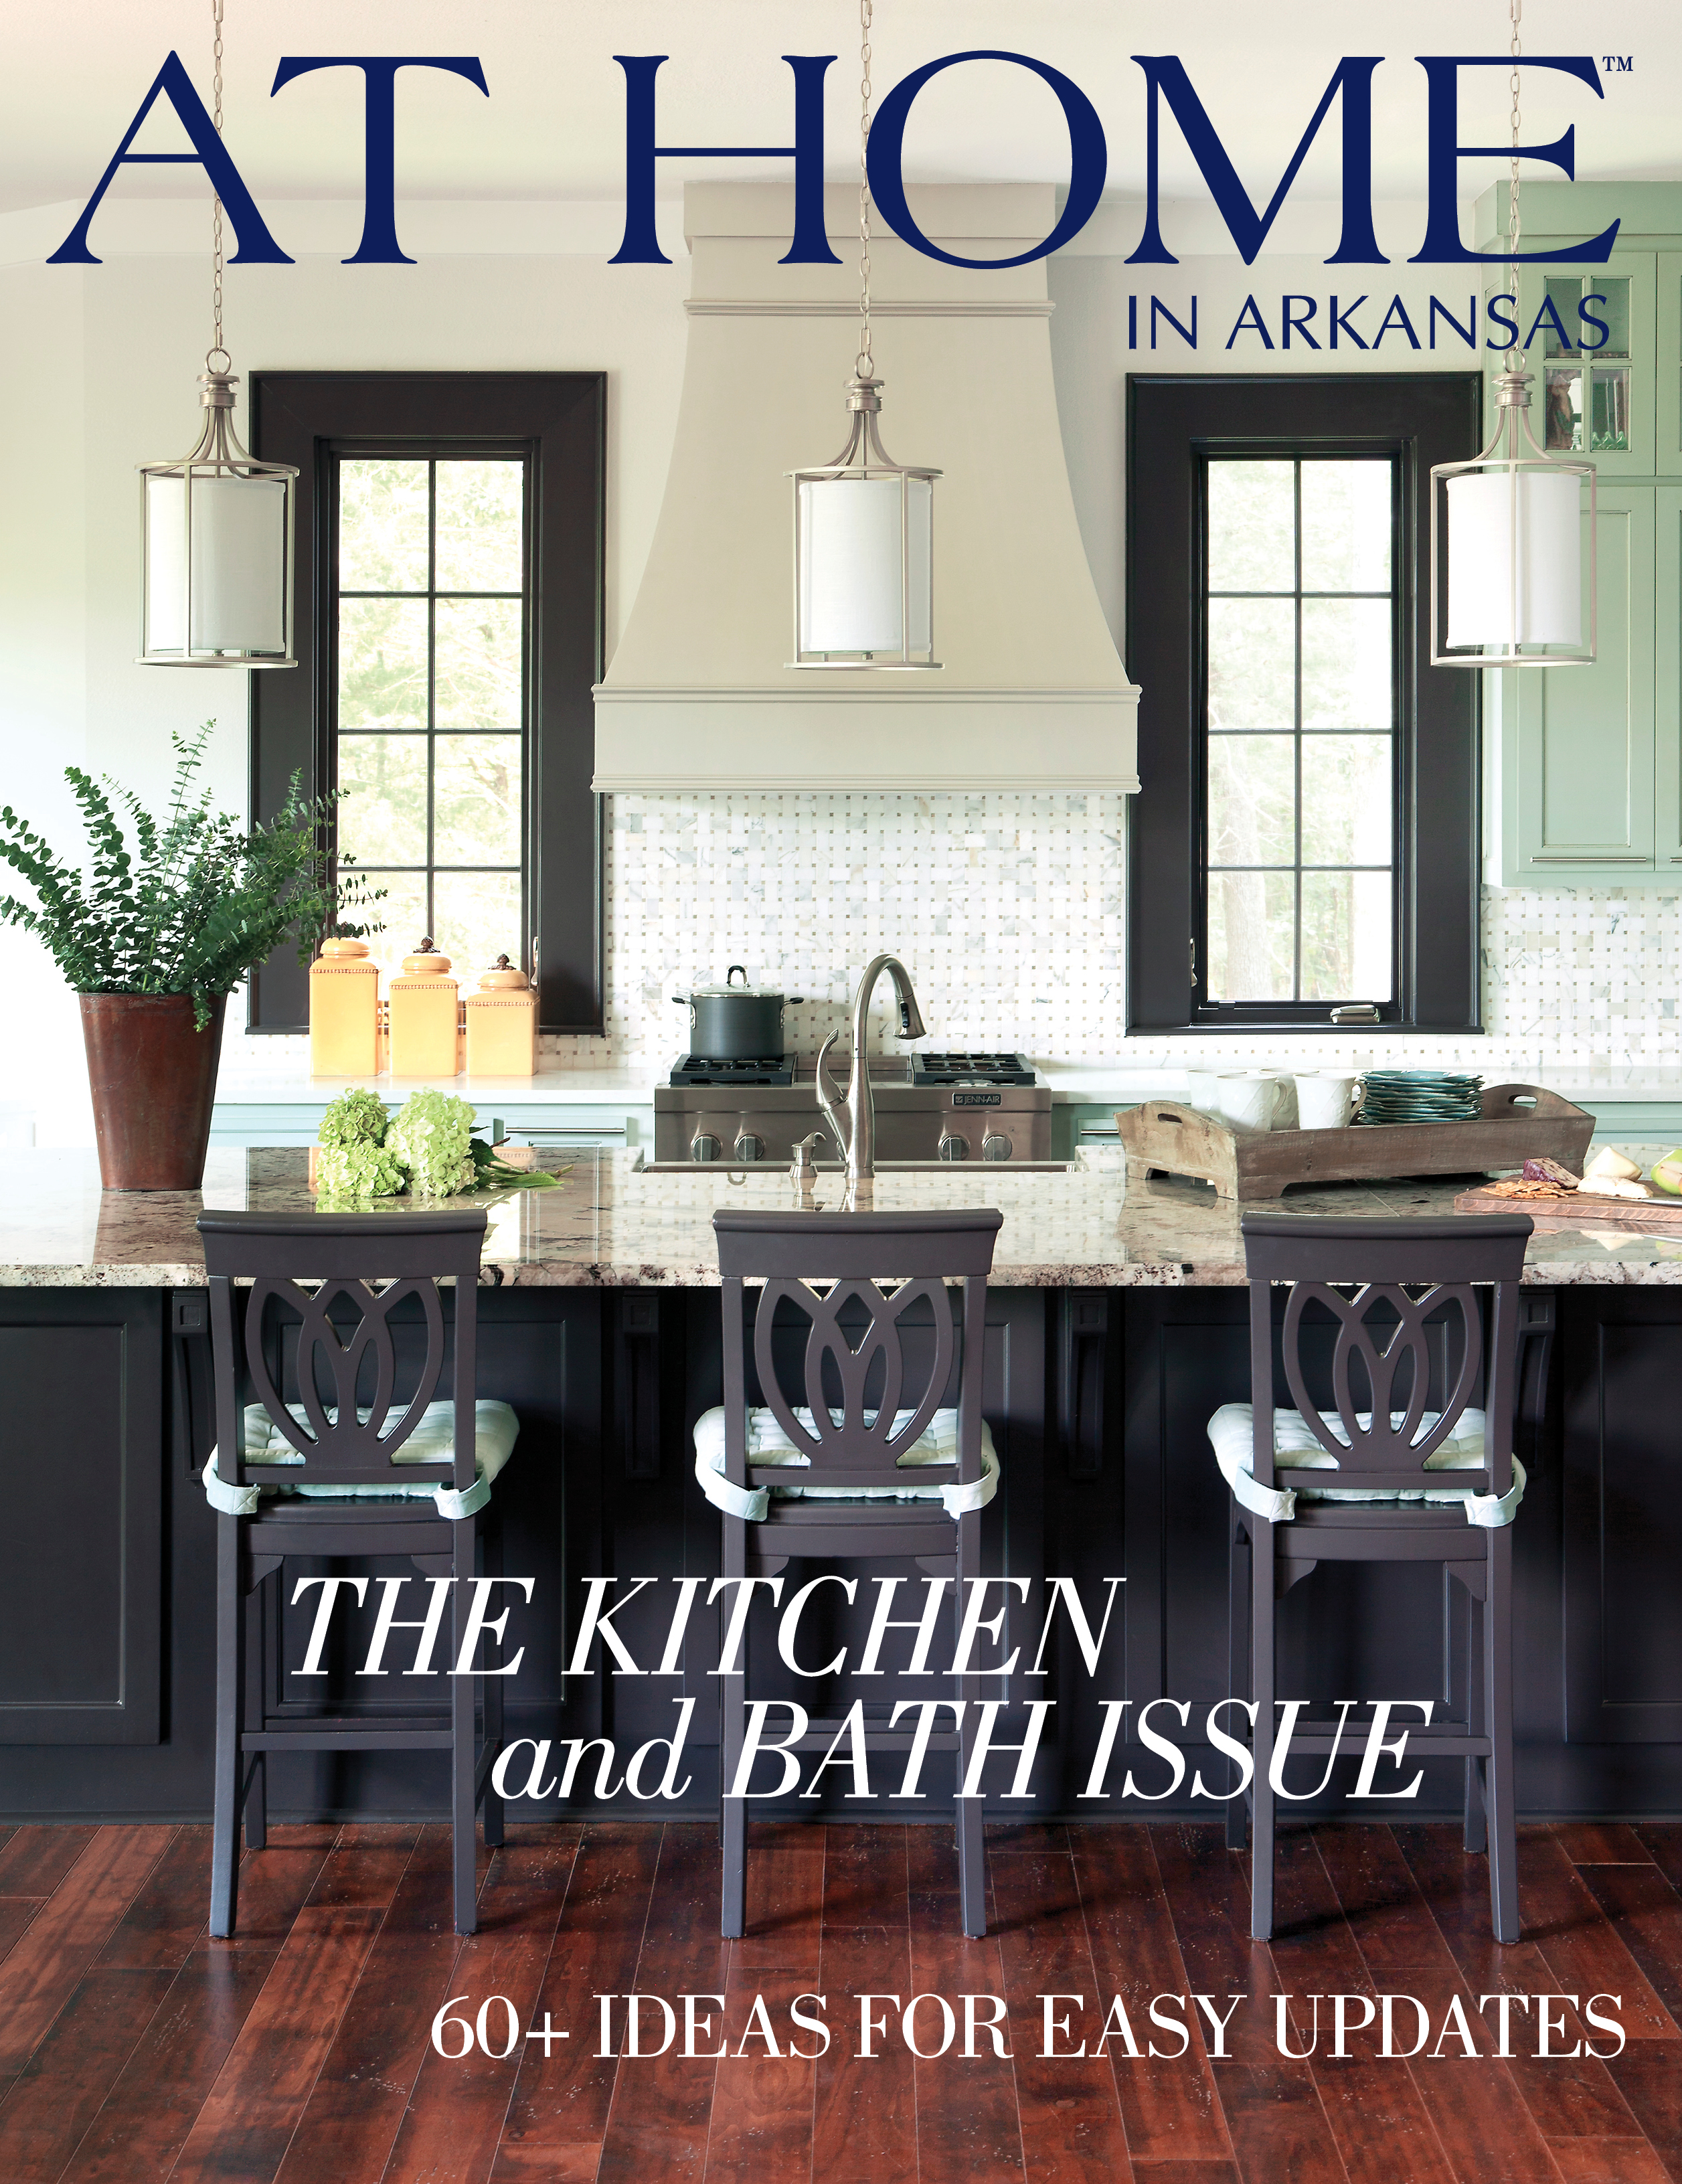 At Home in Arkansas | September 2013 |  Kitchen and Bath Issue